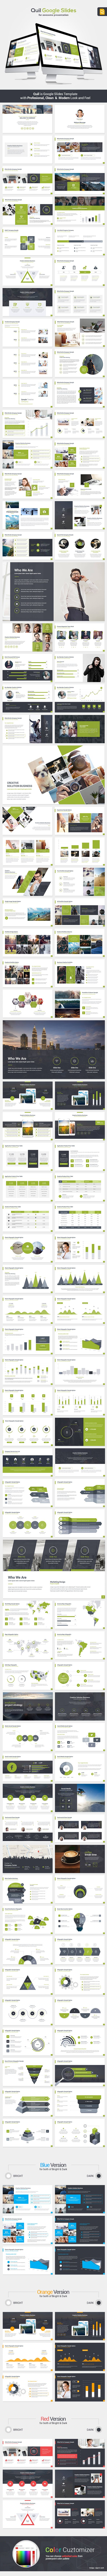 Quil Google Slides Template - Google Slides Presentation Templates